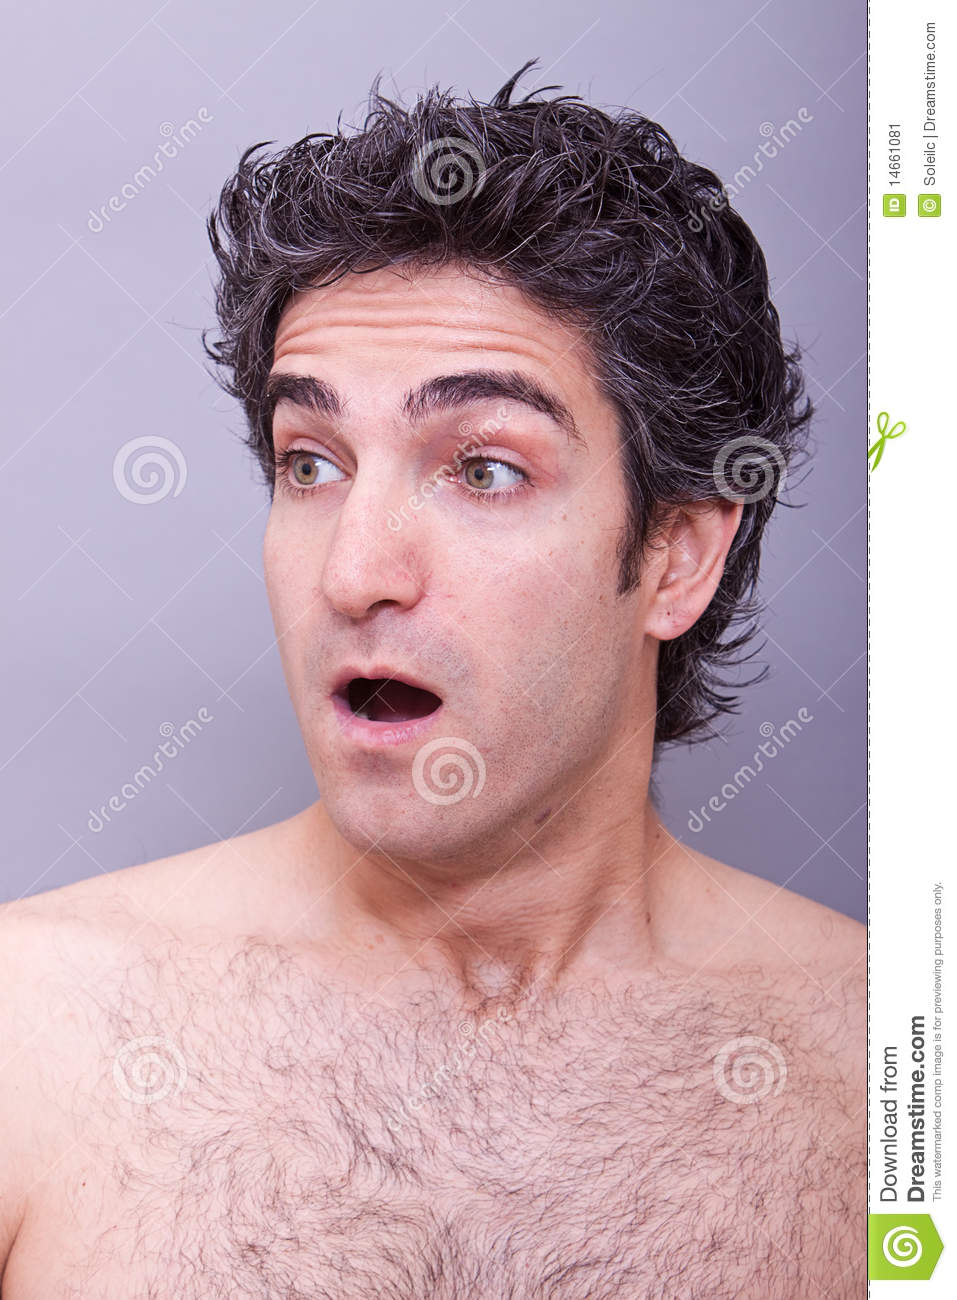 Shocked Or Surprised Facial Expression Stock Image - Image ...